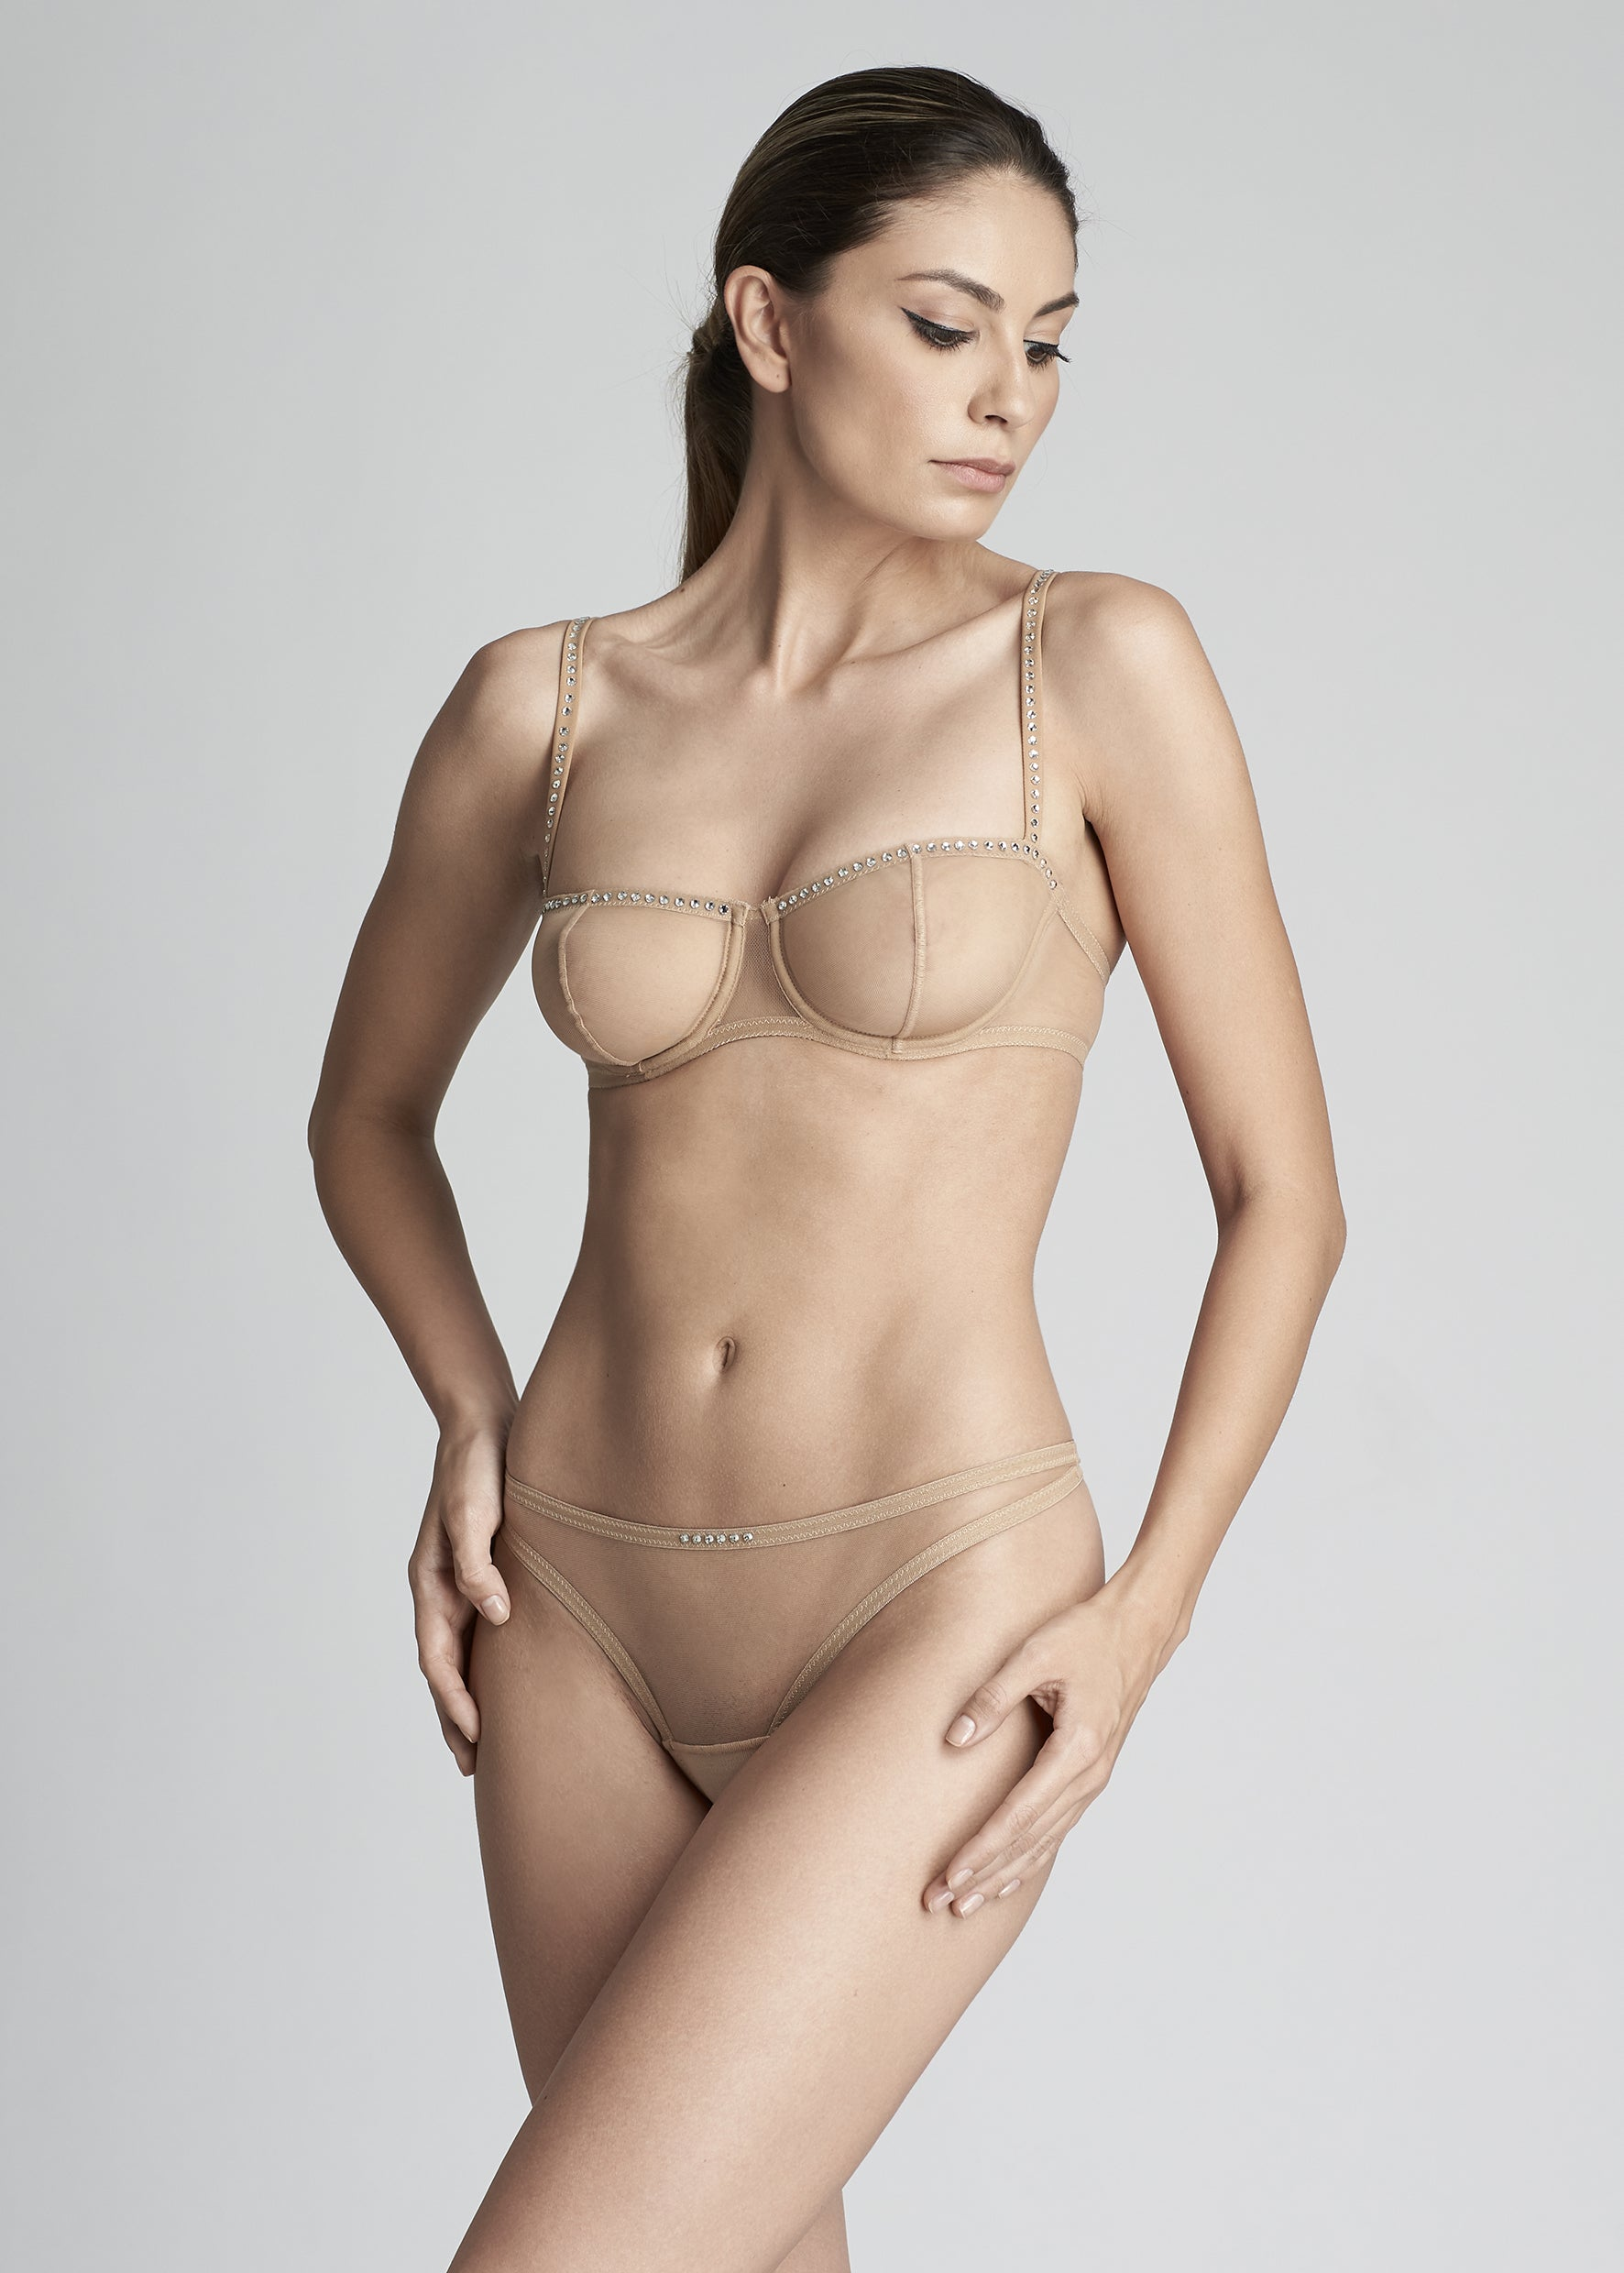 Nuit Interdit Thong with Swarovski Crystals in Nude - I.D. Sarrieri